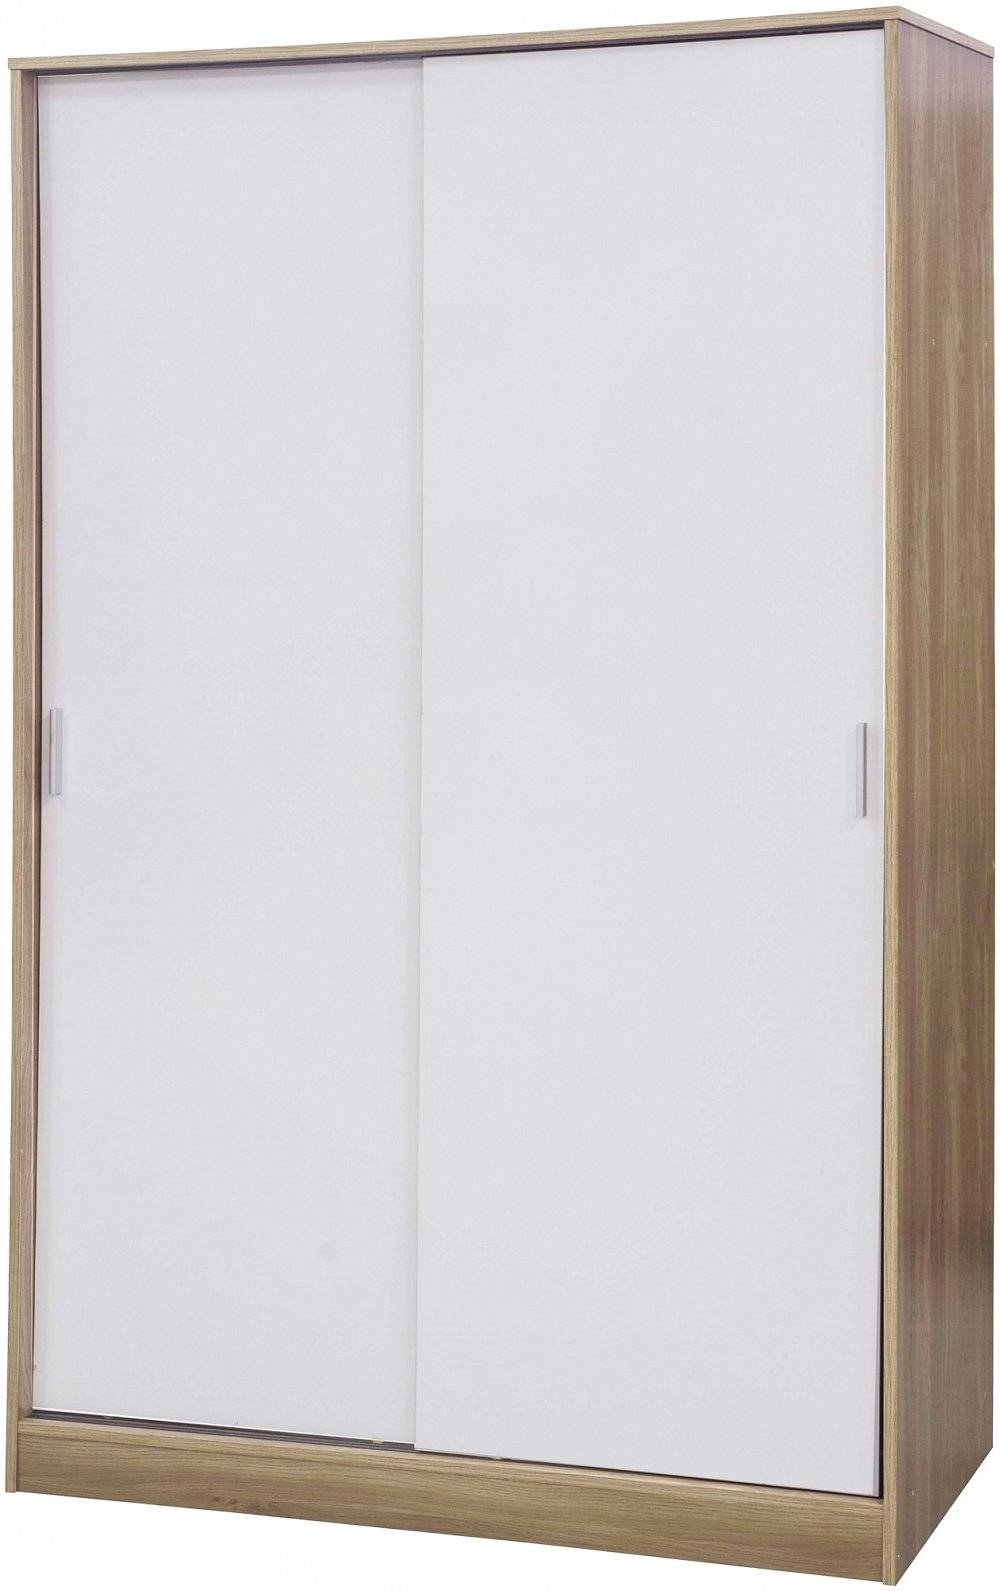 Credit Crunch Carpets Nottingham: - Ottawa Sliding Wardrobe White/oak within Oak And White Wardrobes (Image 9 of 15)